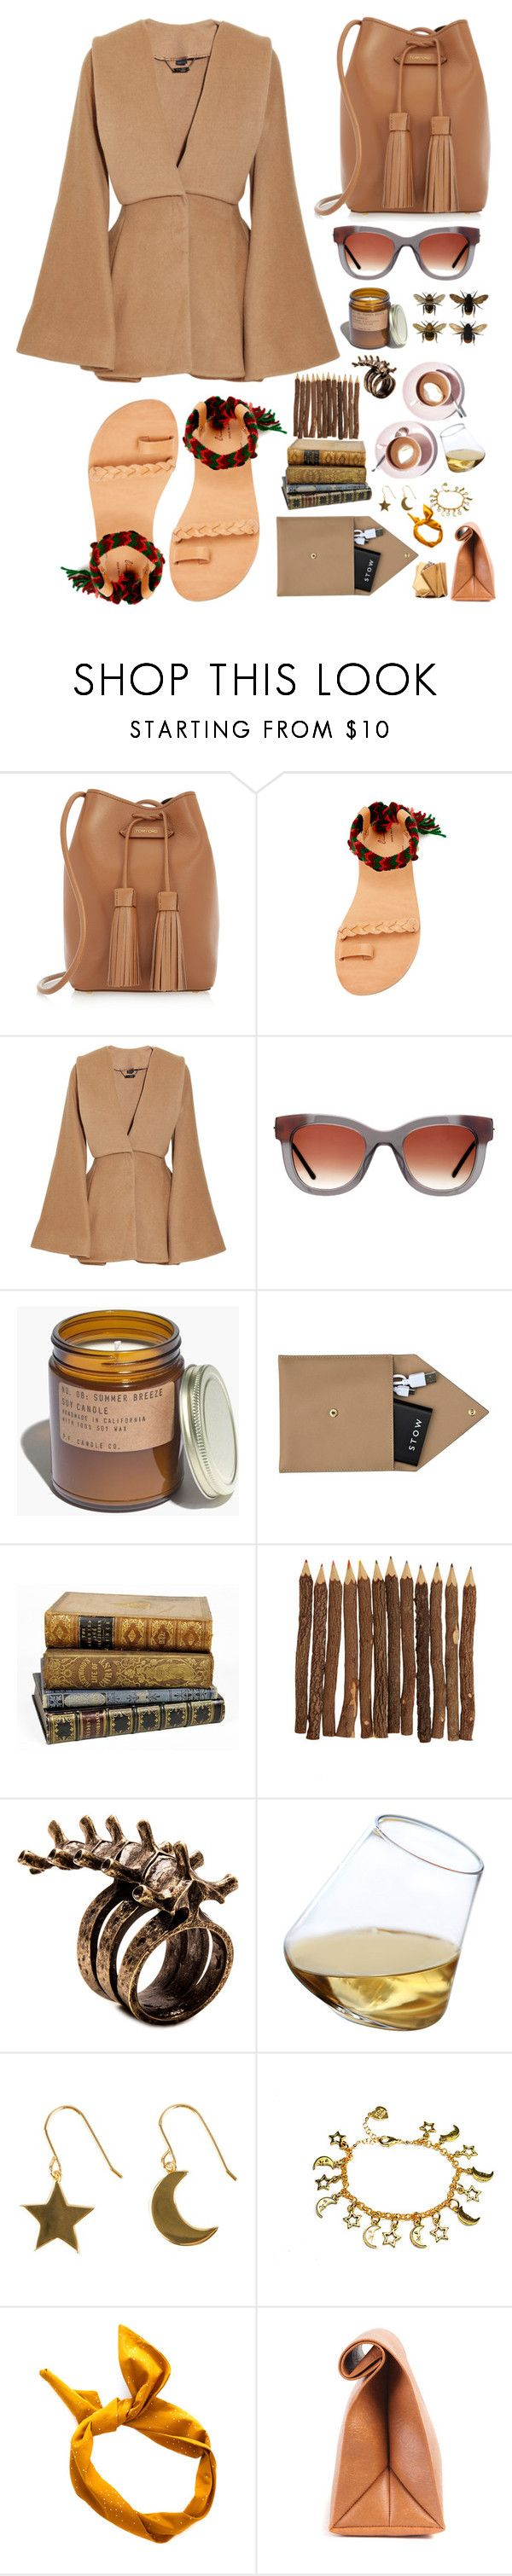 """Tanned"" by finding-0riginality ❤ liked on Polyvore featuring Tom Ford, Elina Lebessi, Alexander McQueen, Martha Stewart, Thierry Lasry, Madewell, STOW, None the Richer, Sempli and SOPHIE by SOPHIE"